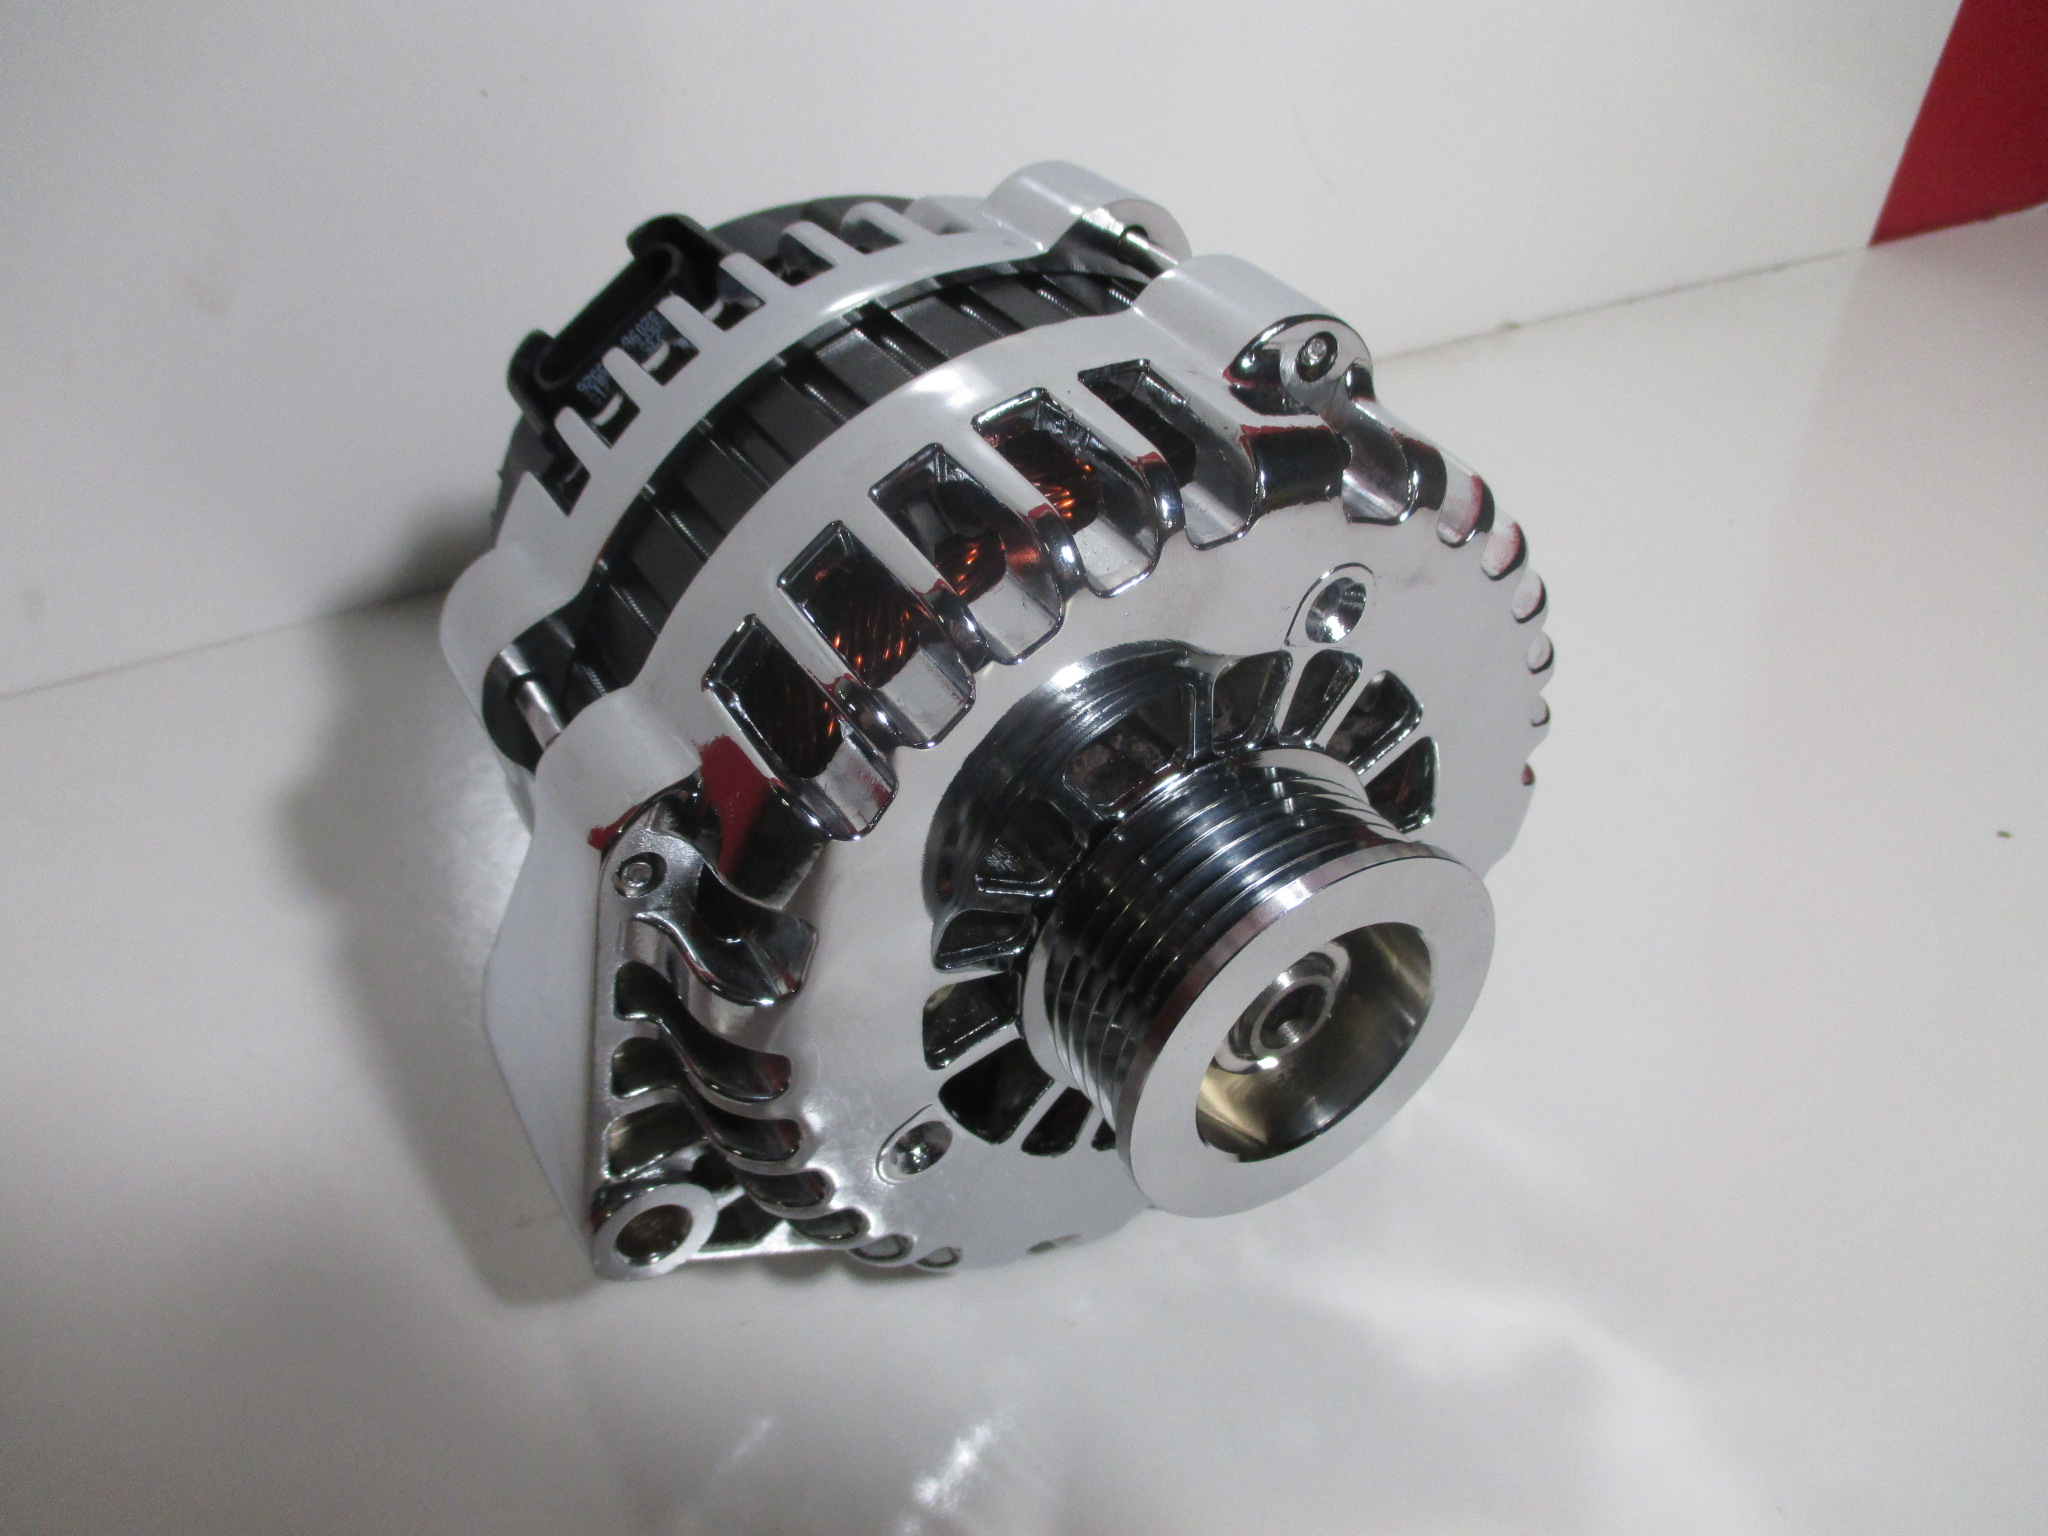 Ls 4 Pin Style Alternator Pigtail 22 Single Wire Warr Automotive Wiring Harness Pigtails High Output Gm F Body Ls1 Or Trucks 180 Amp Chrome Cs130d